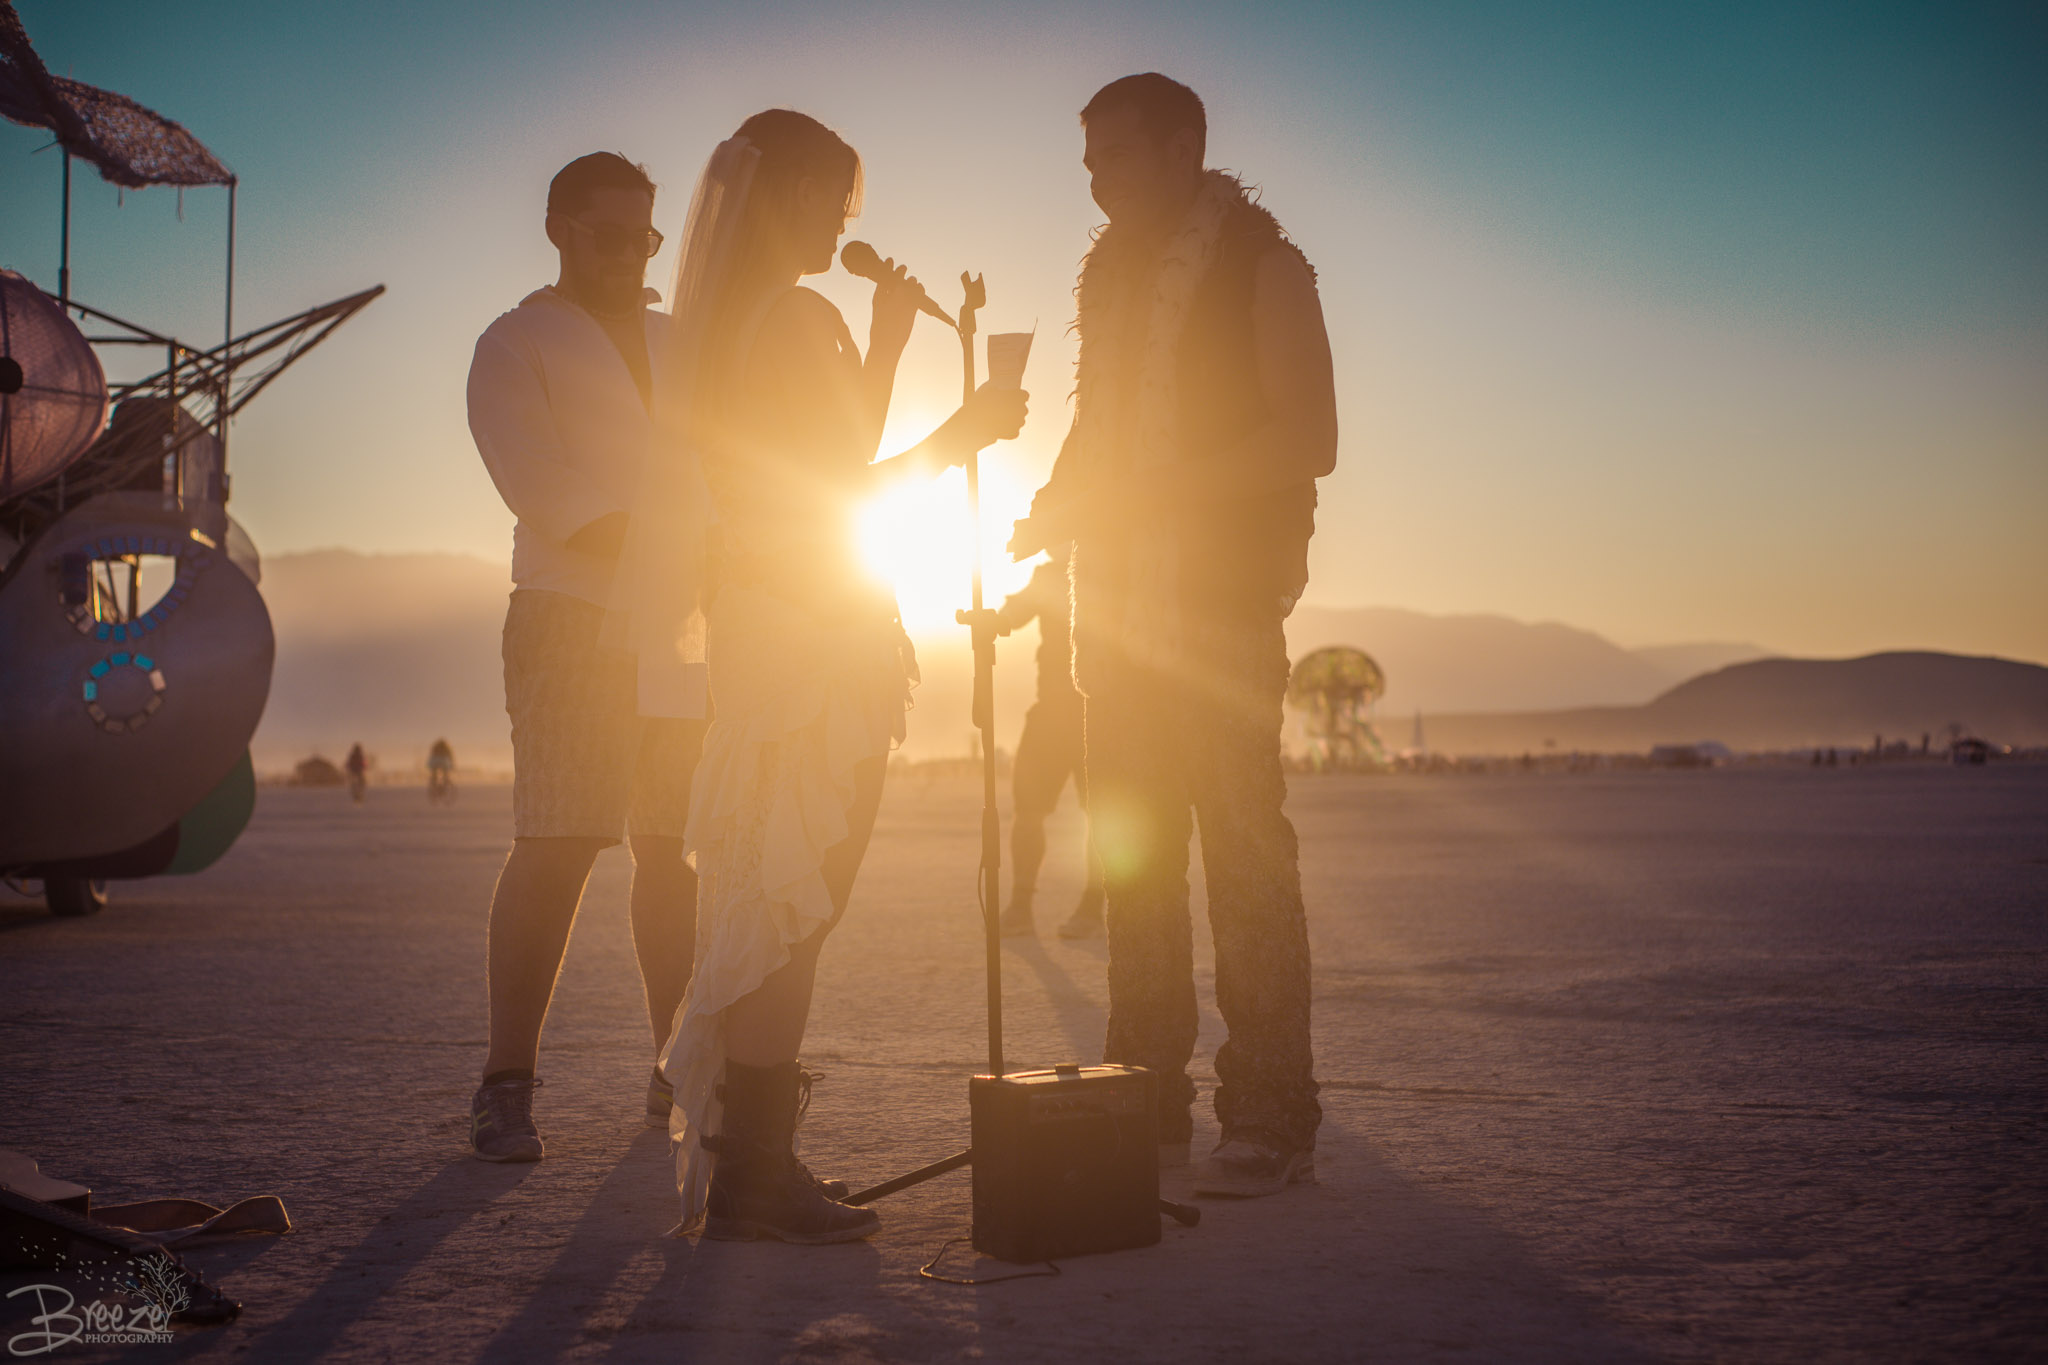 Brie'Ana Breeze Photography & Media - Burning Man 2018-3532.jpg